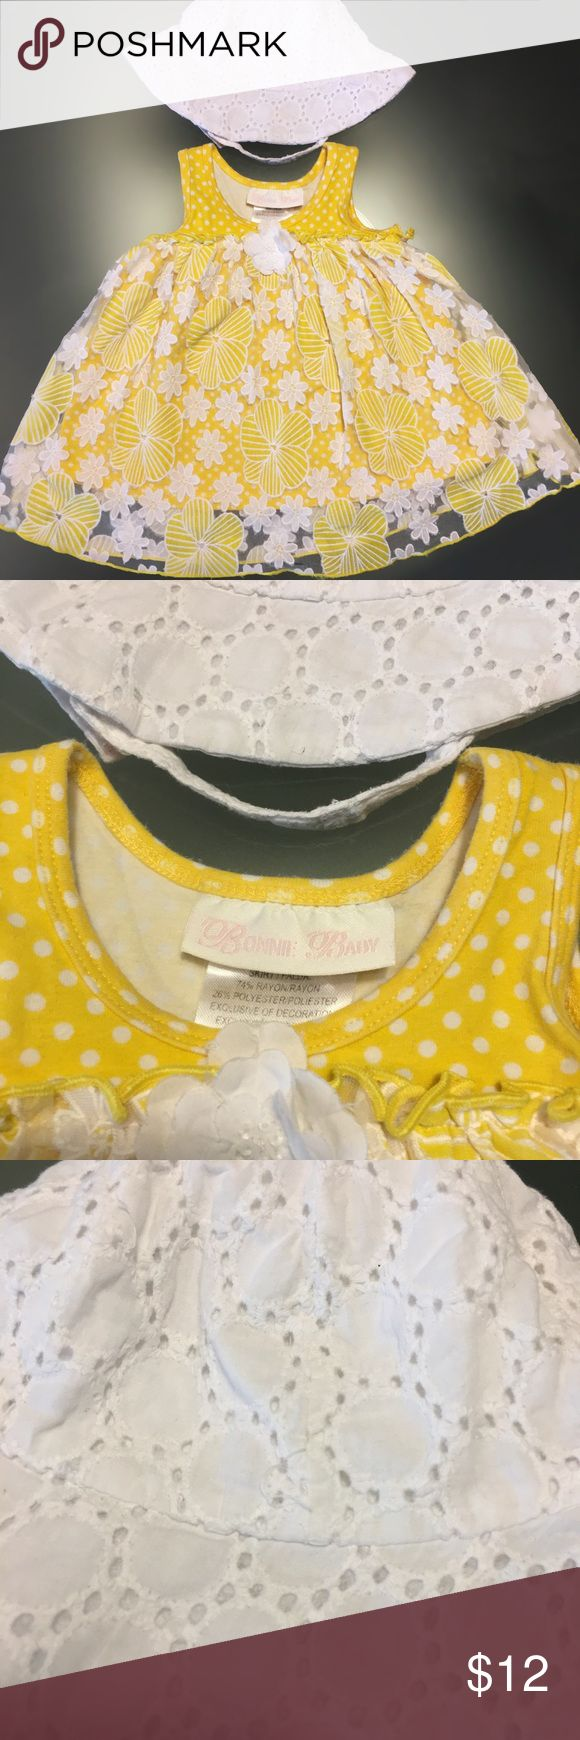 Yellow floral sundress and white sun hat Fits about 3-6 mos, Velcro chin attachment on hat Dresses Casual